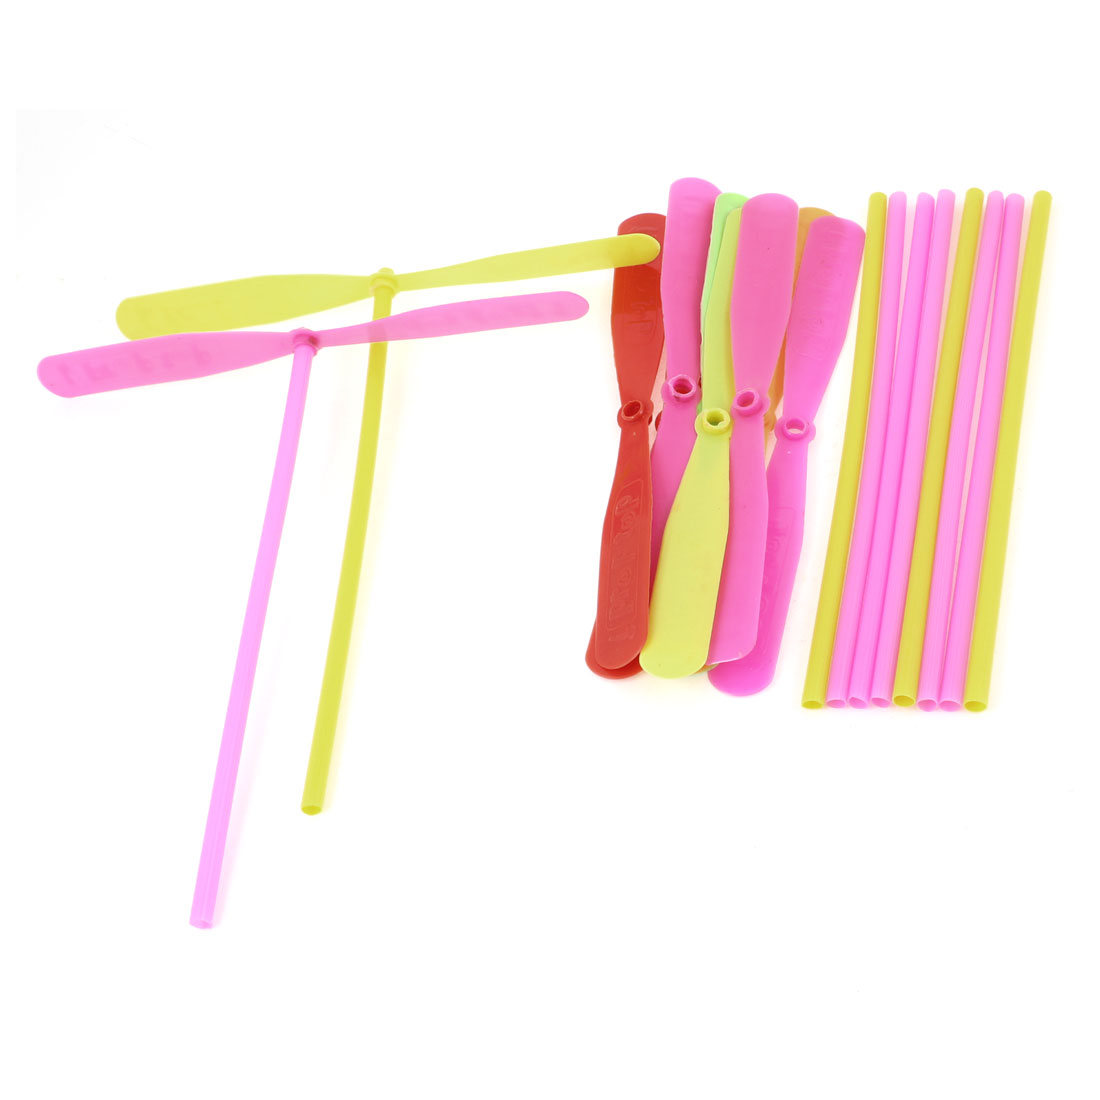 Kids Assorted Color Plastic Flying Dragonfly Propeller Hand Toy 10 Pcs